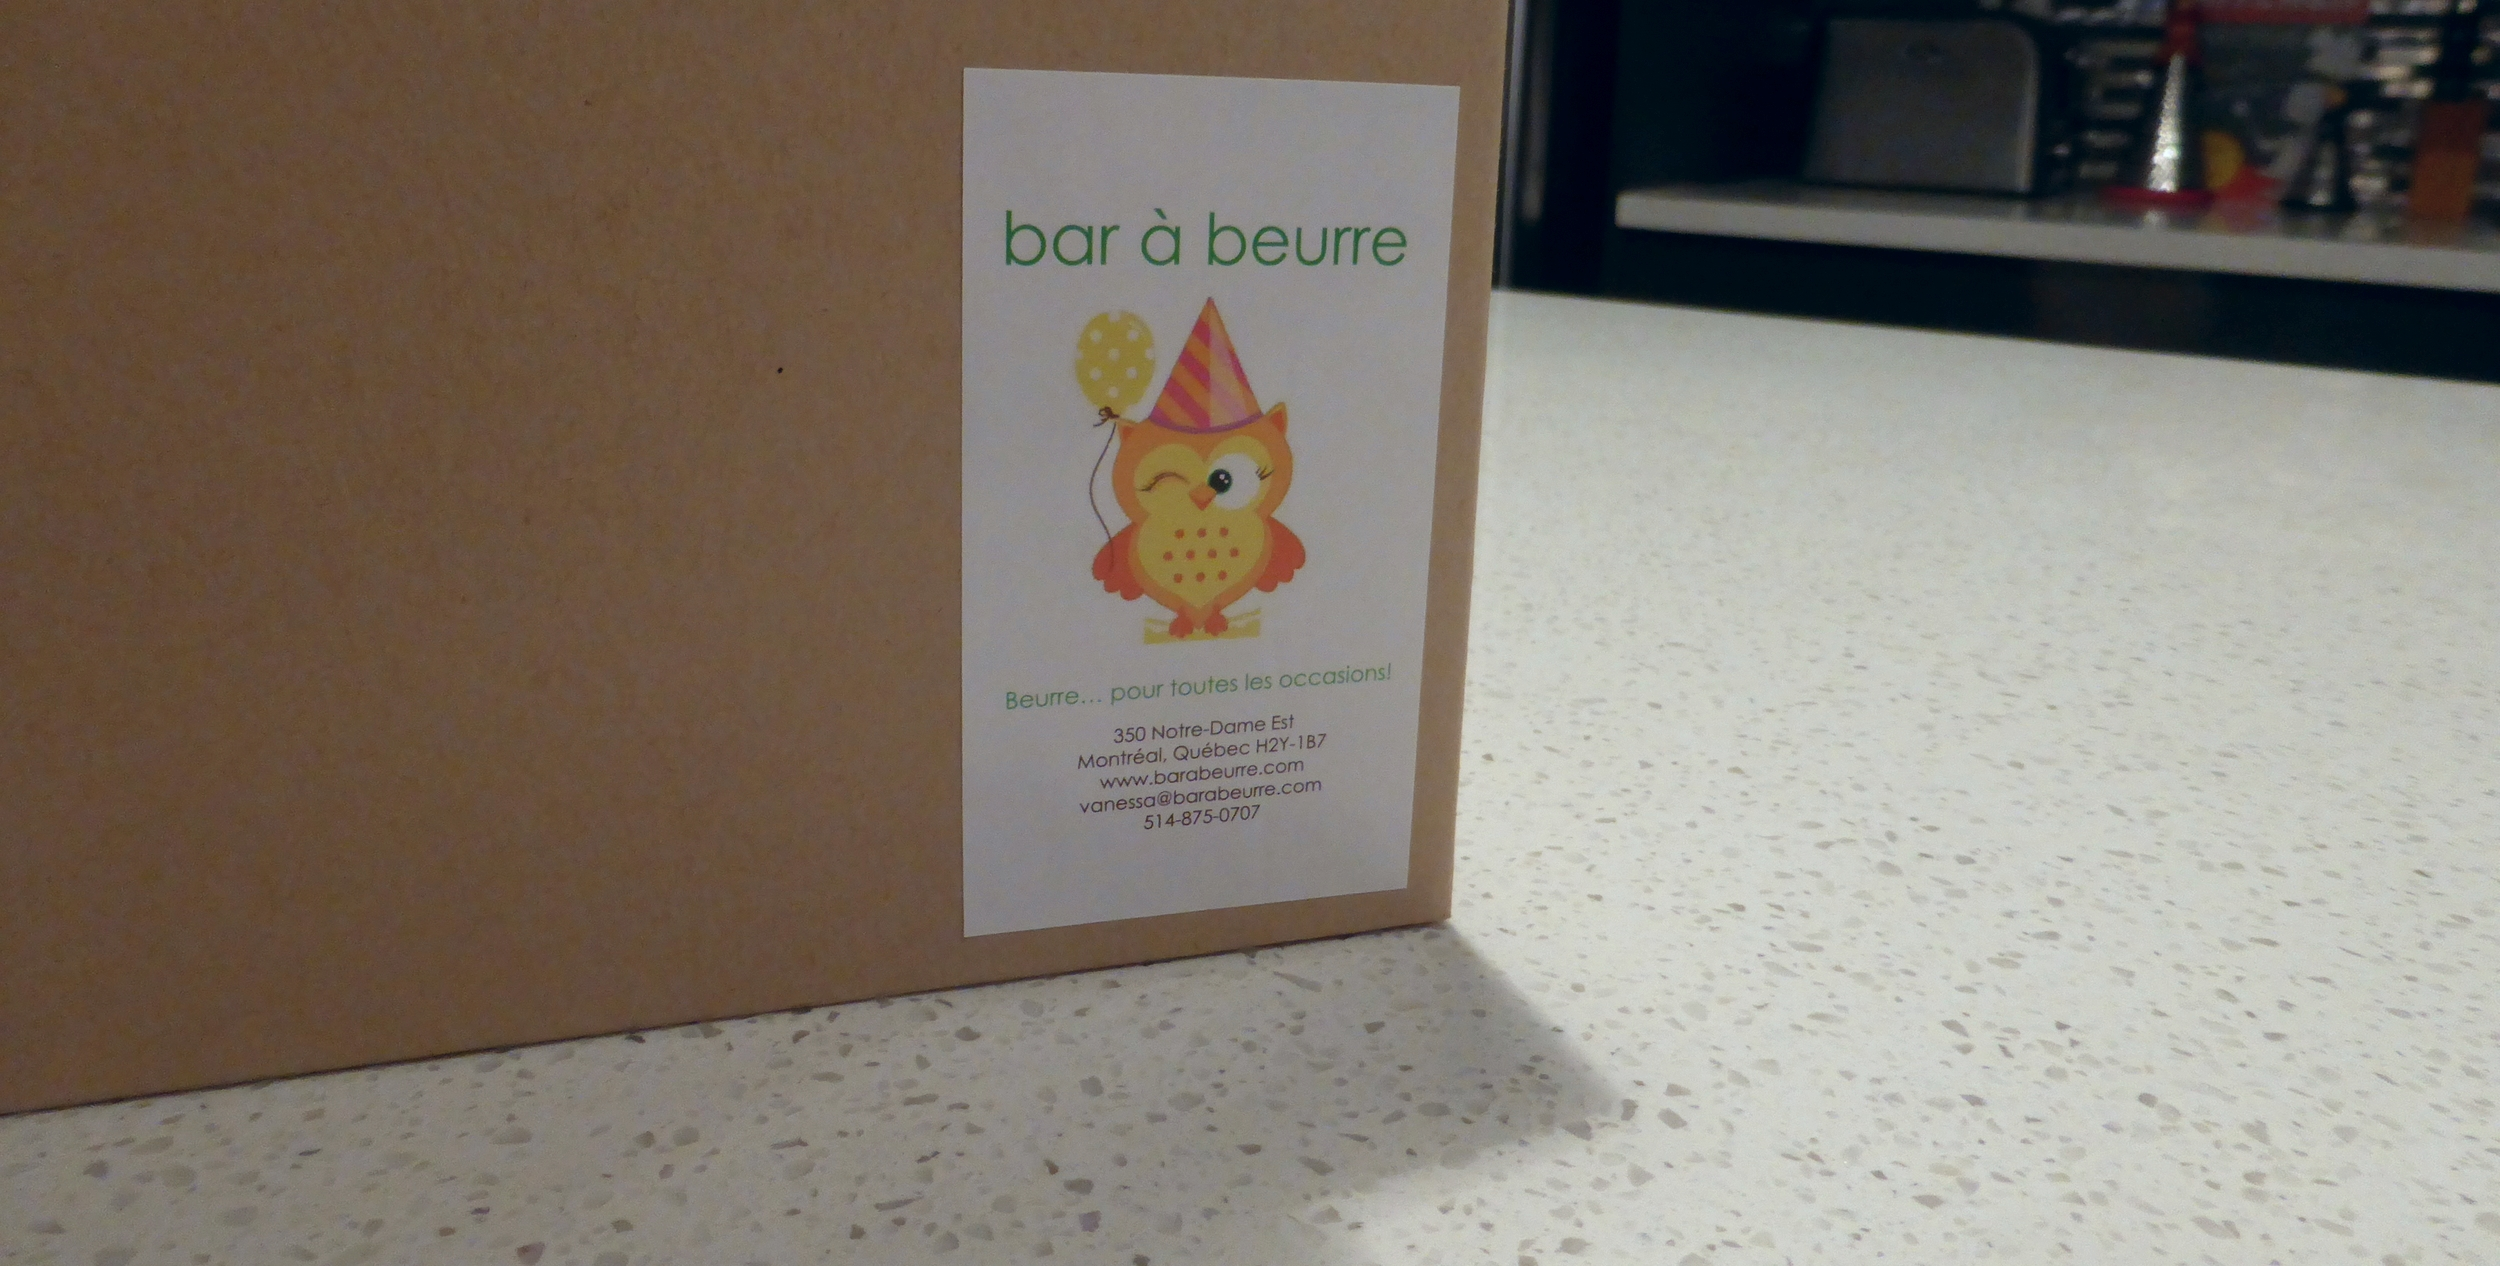 bar a beurre - pesche dolci - montreal bakery - montreal desserts - my girl montreal